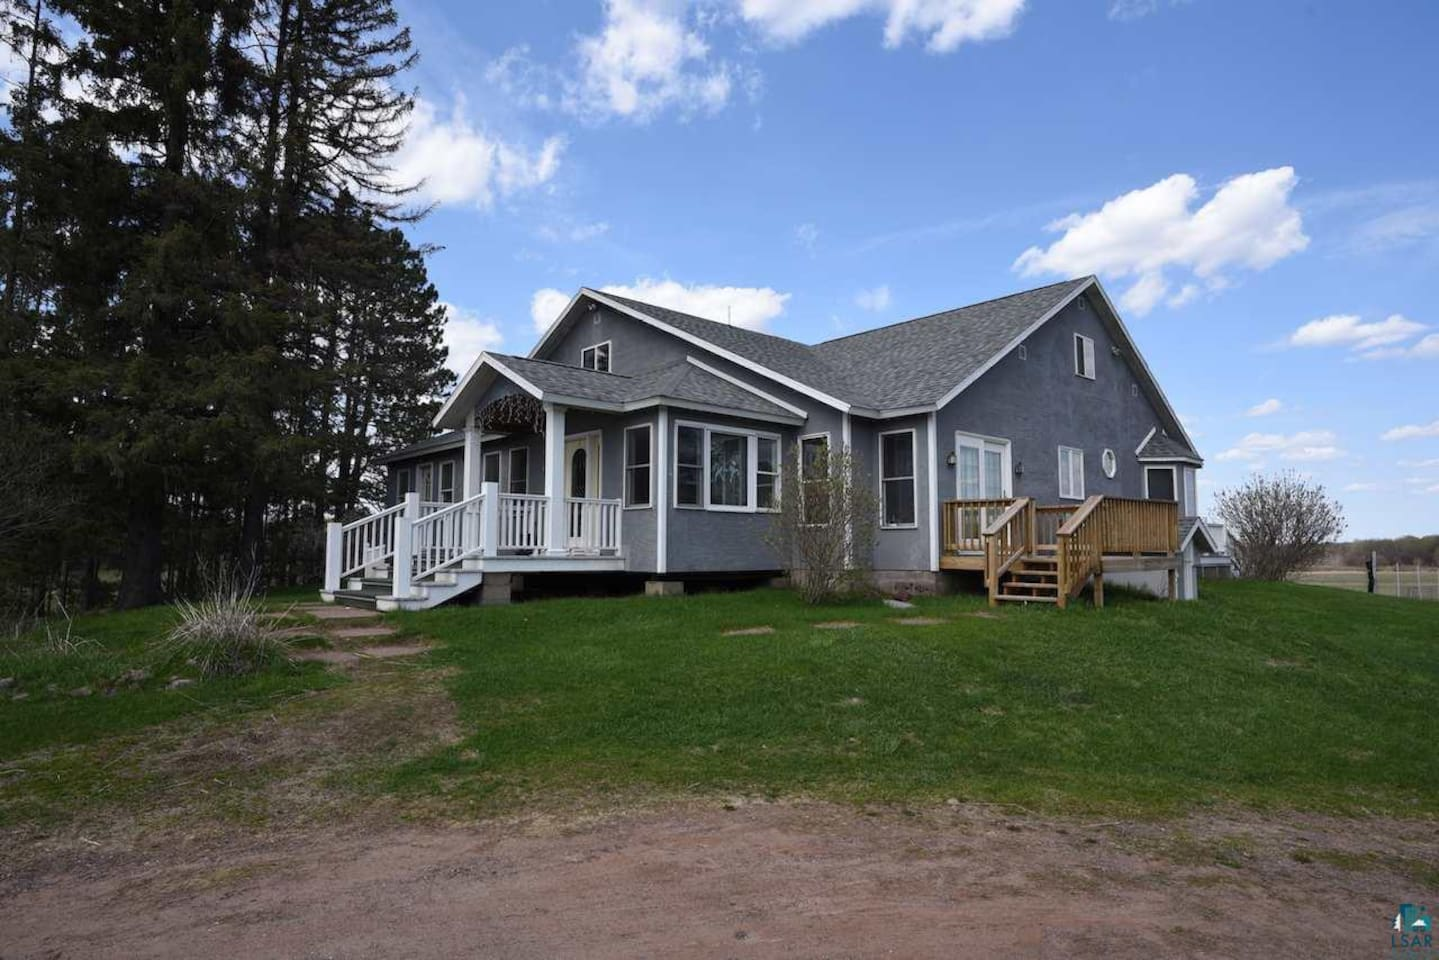 4000 square foot home on 160 acres. Panoramic views!